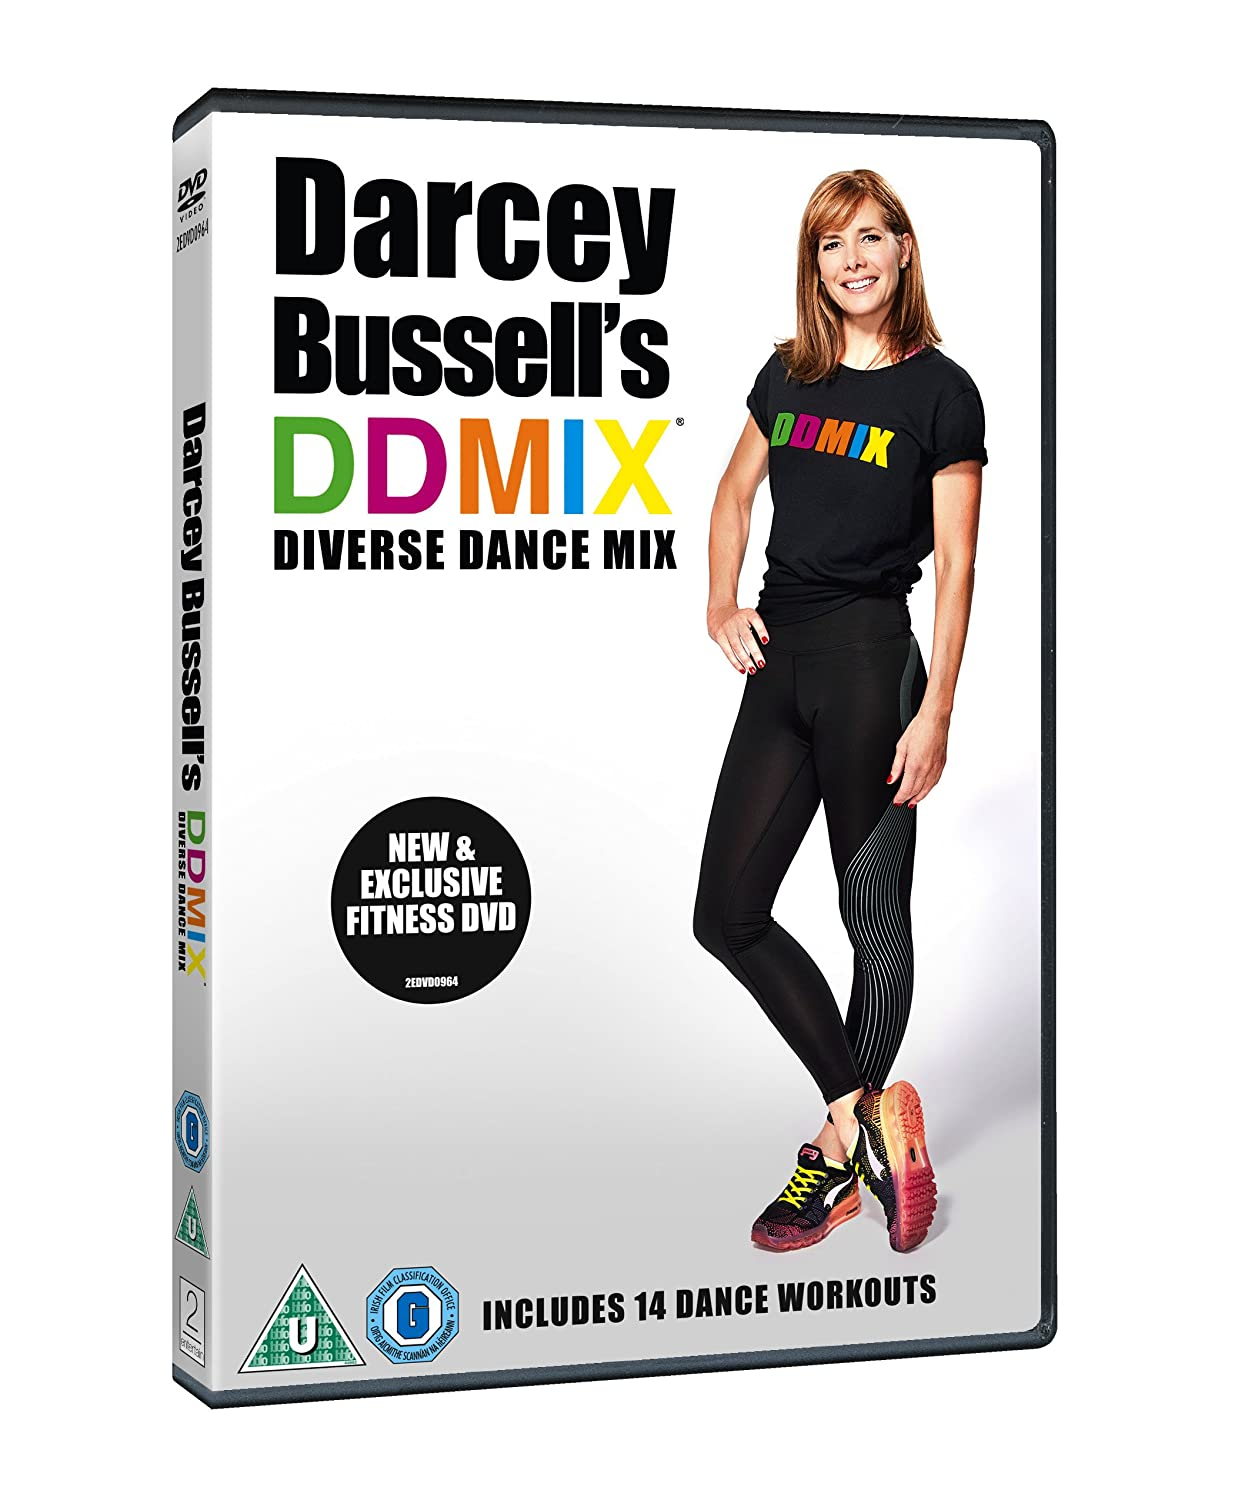 d5179e952 Darcey Bussell Diverse Dance Mix  DVD   Amazon.co.uk  Darcey Bussell ...